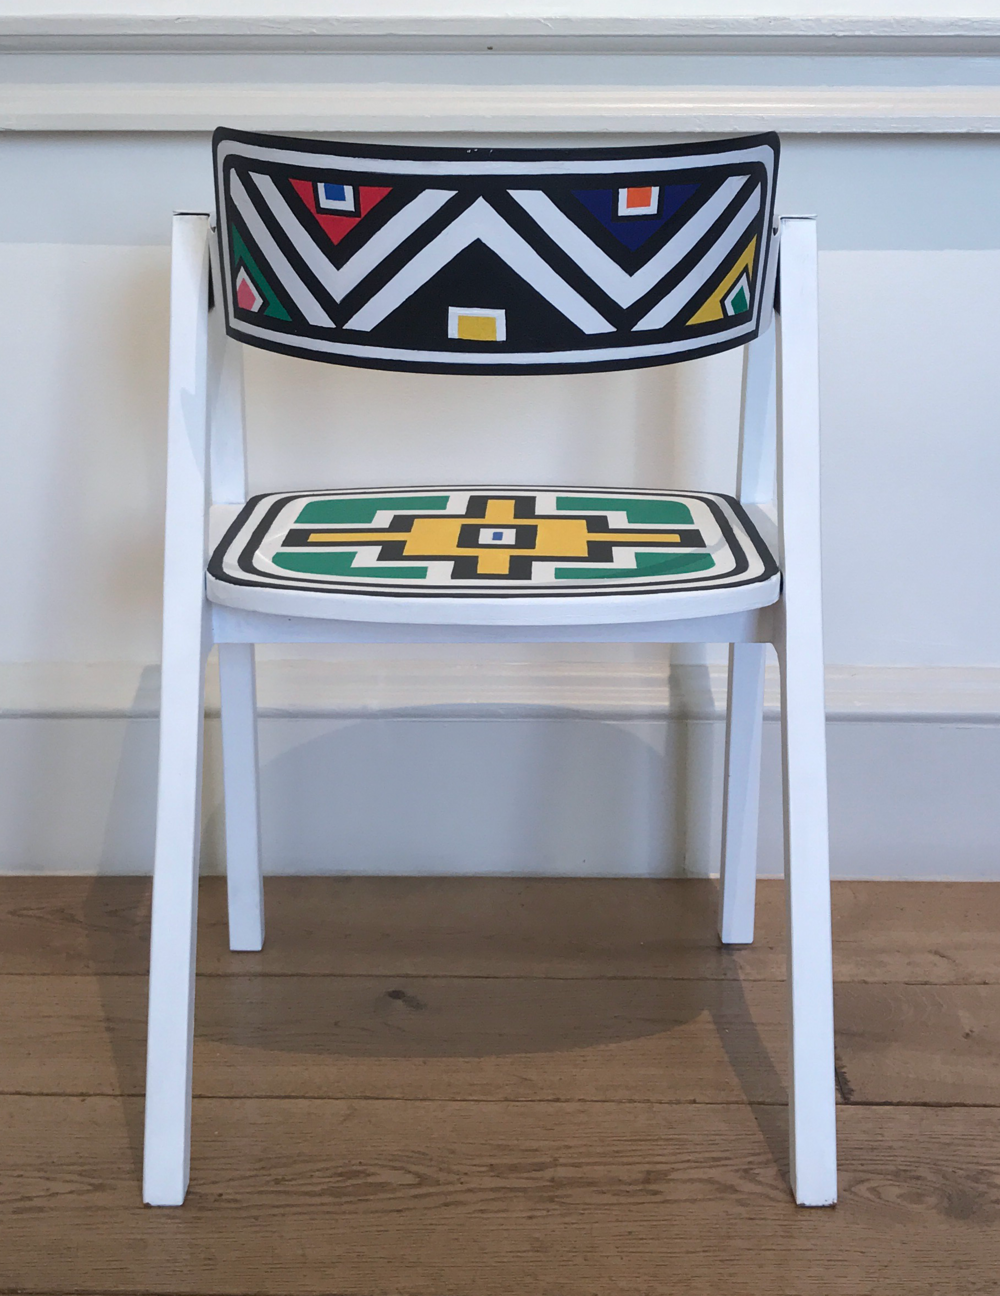 EMahlangu.Chair.001.a.png